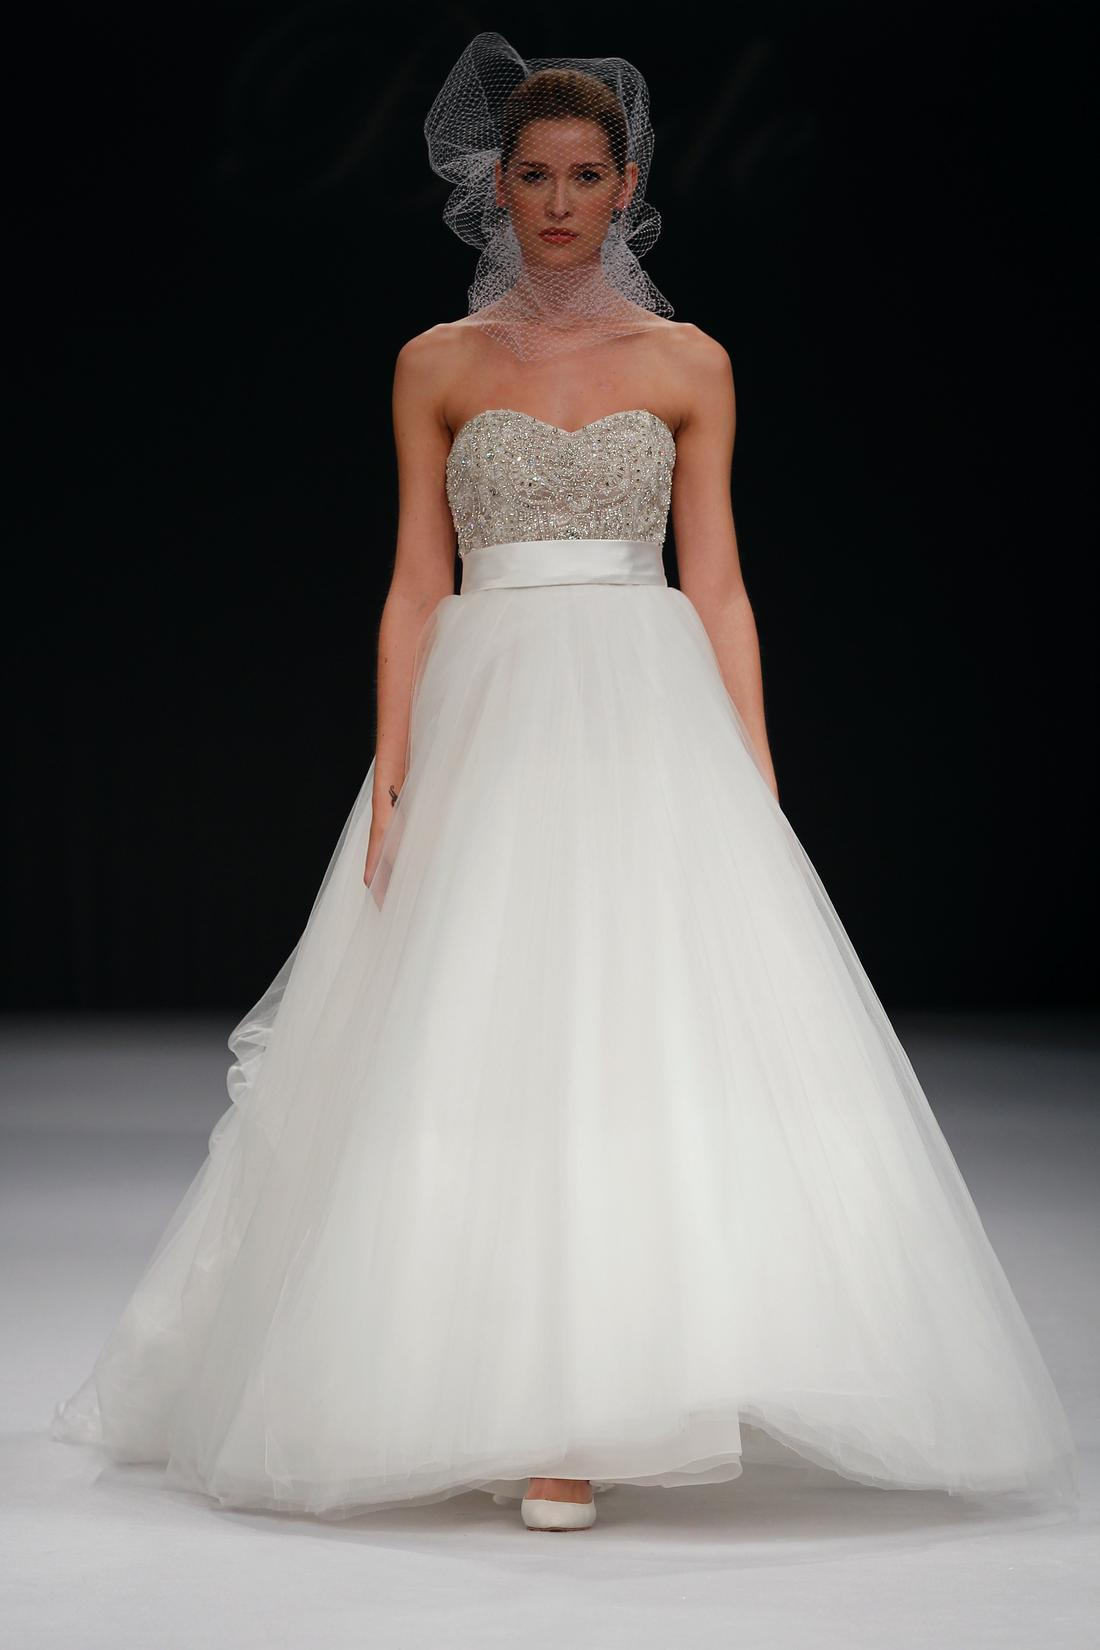 Kleinfeld wedding dresses store for more ease for you to for How to find a wedding dress